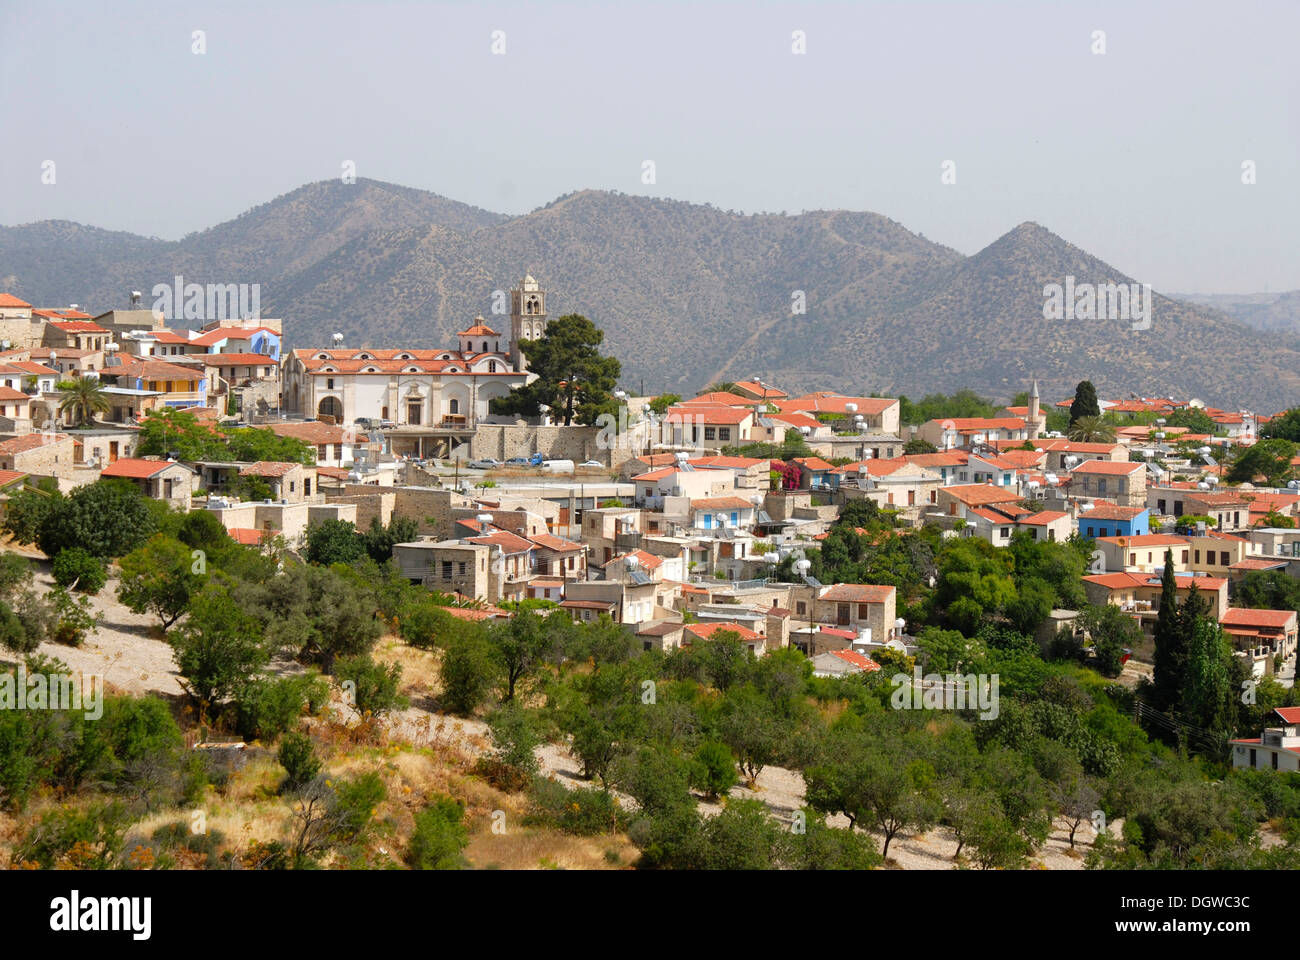 Overlooking the village with church spire and minaret, Pano Lefkara, Southern Cyprus, Republic of Cyprus, the Mediterranean - Stock Image